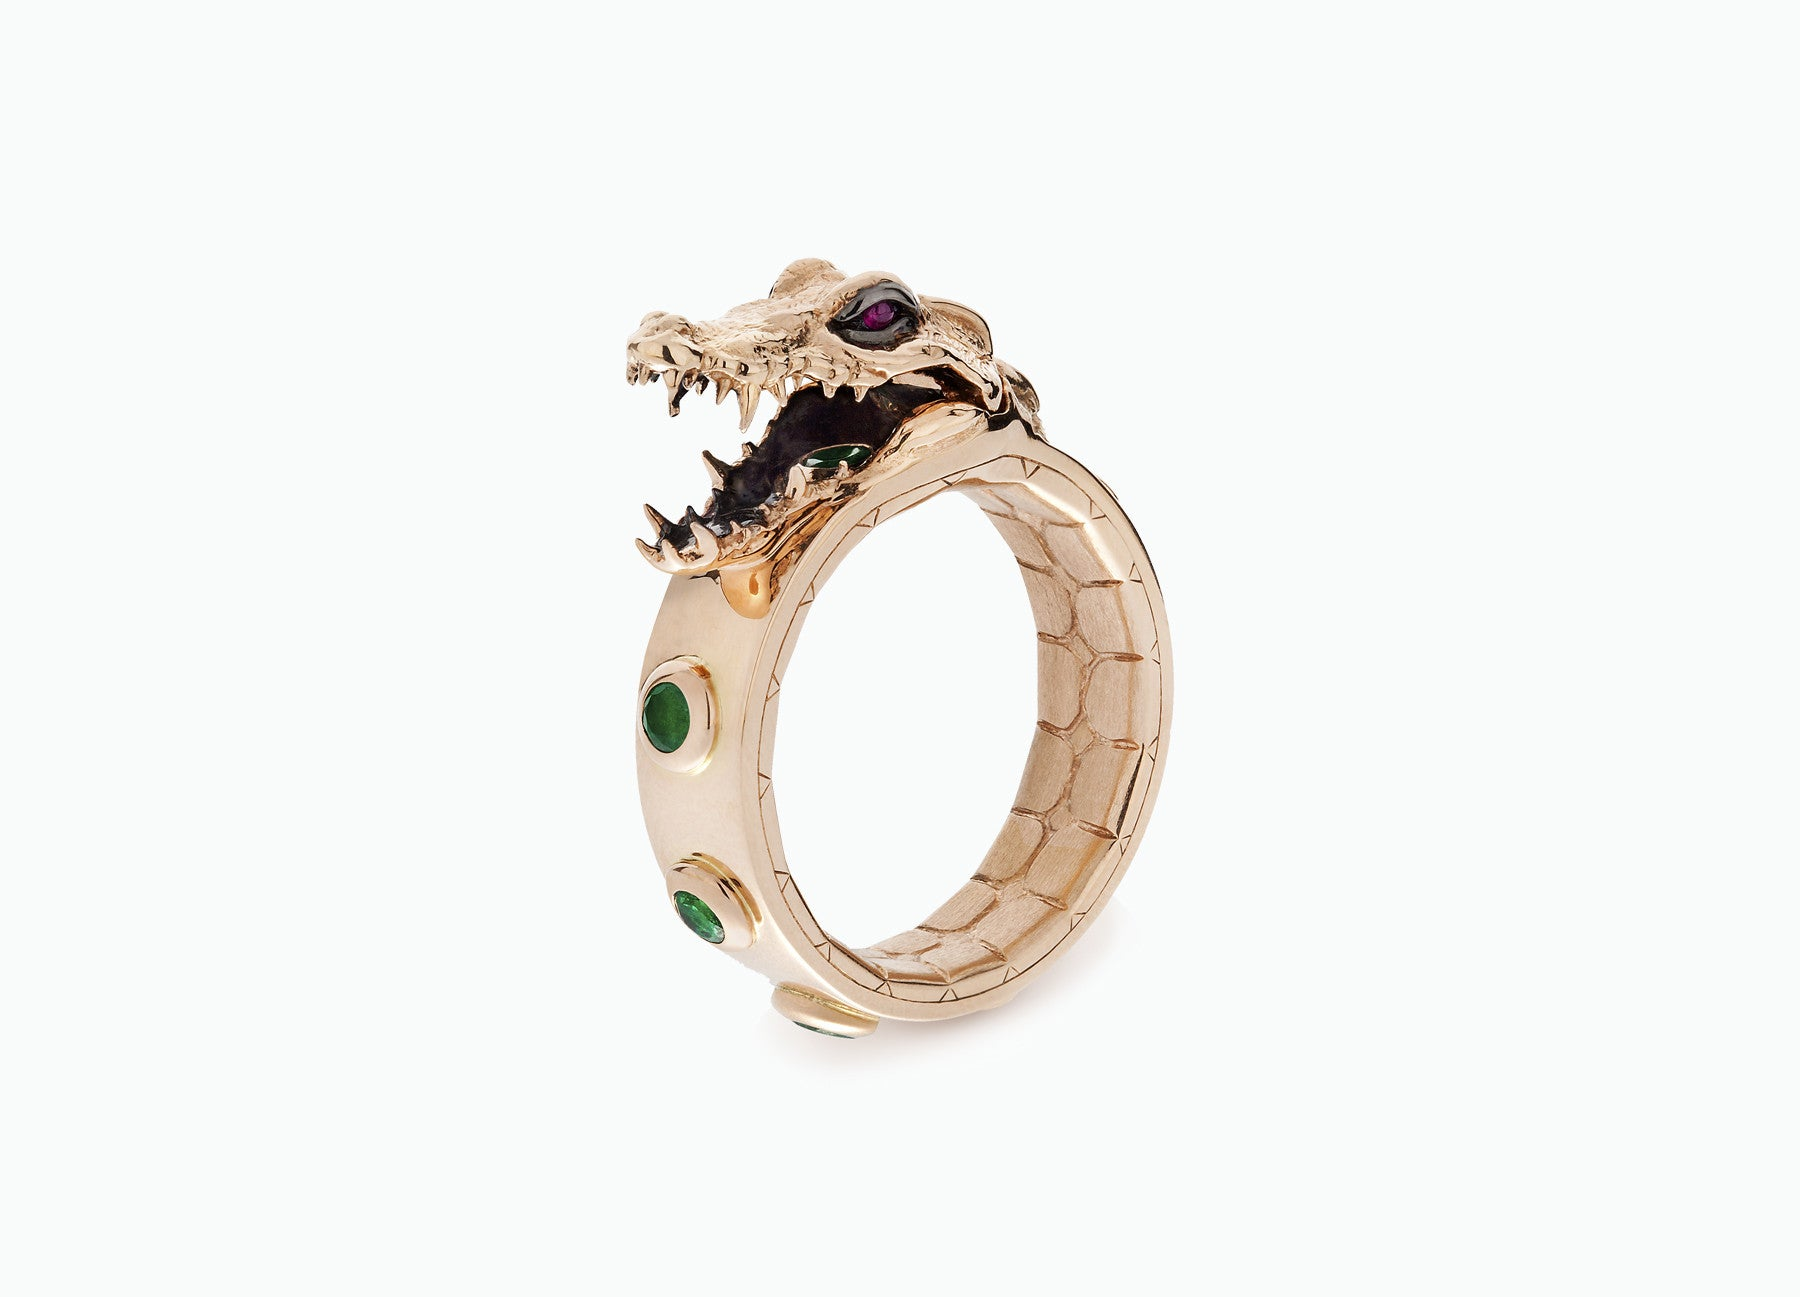 ONE OF A KIND CROCO RING